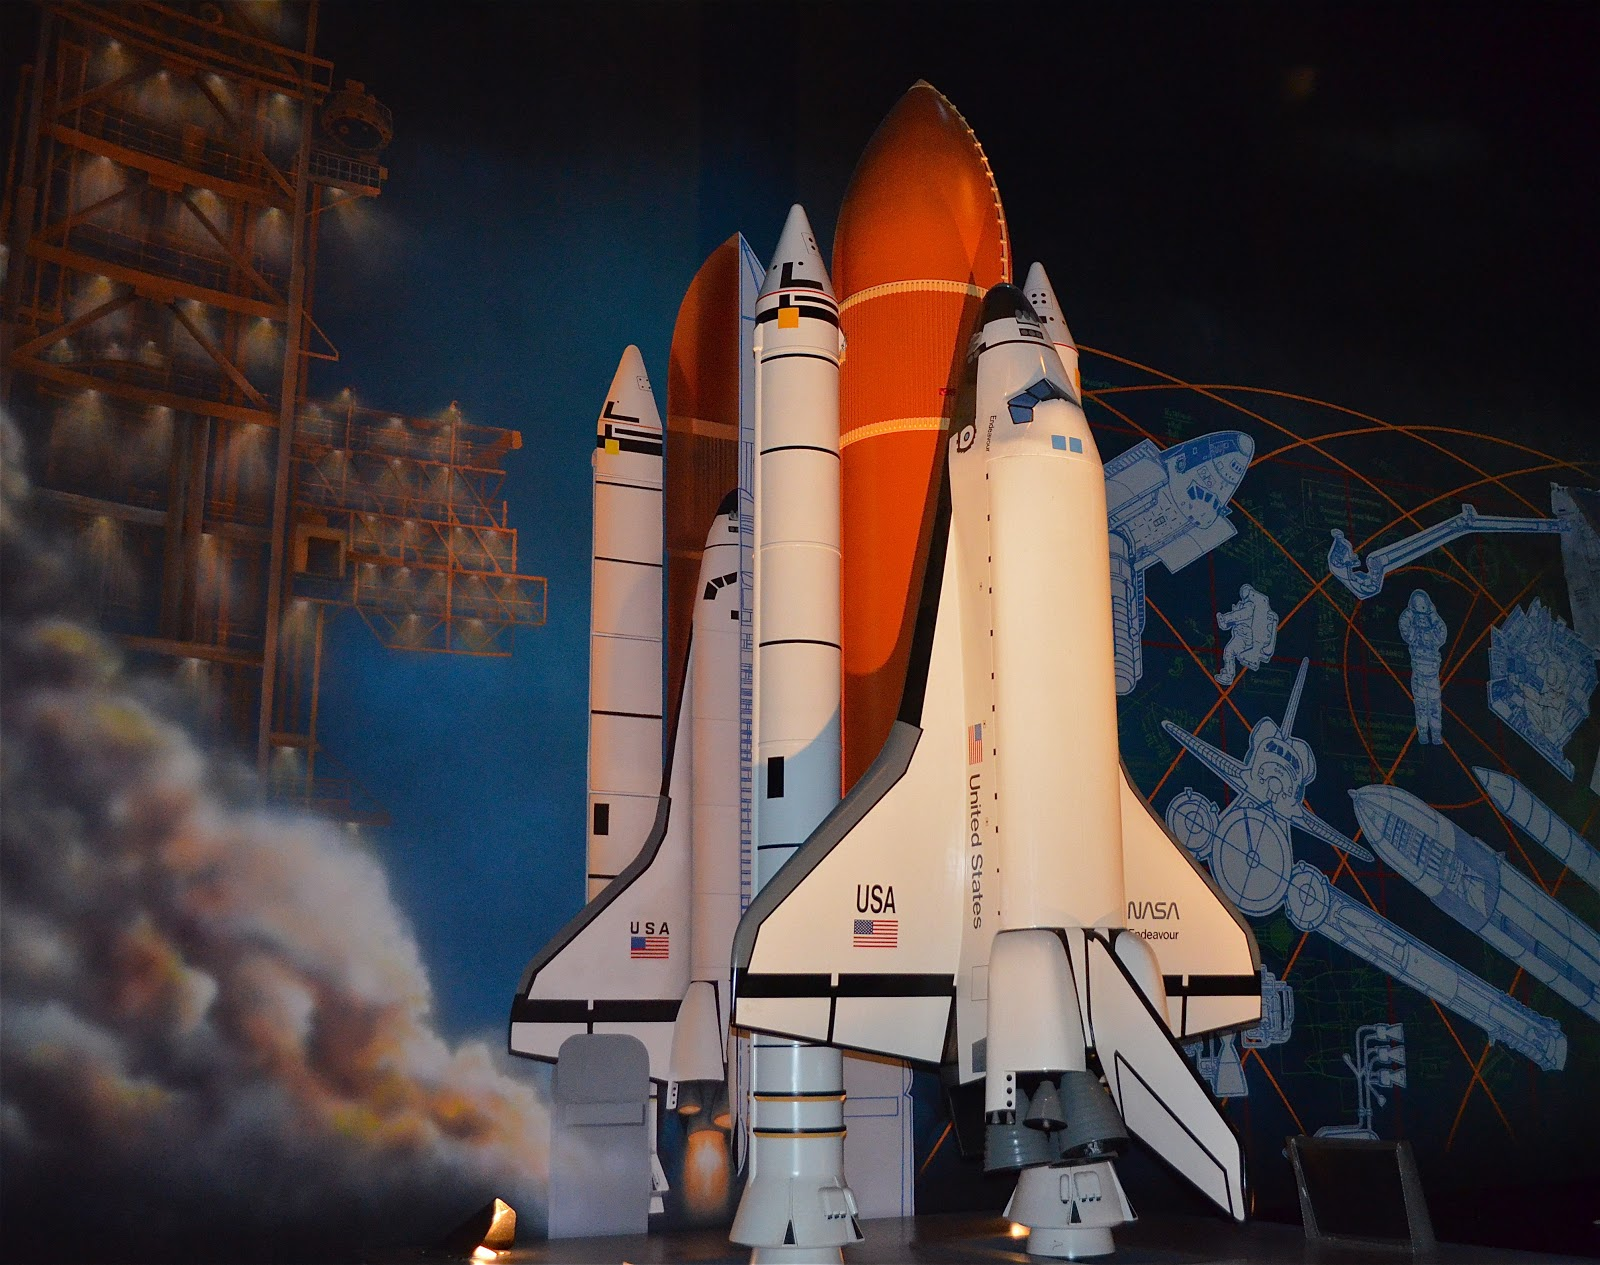 space shuttle jettison - photo #18